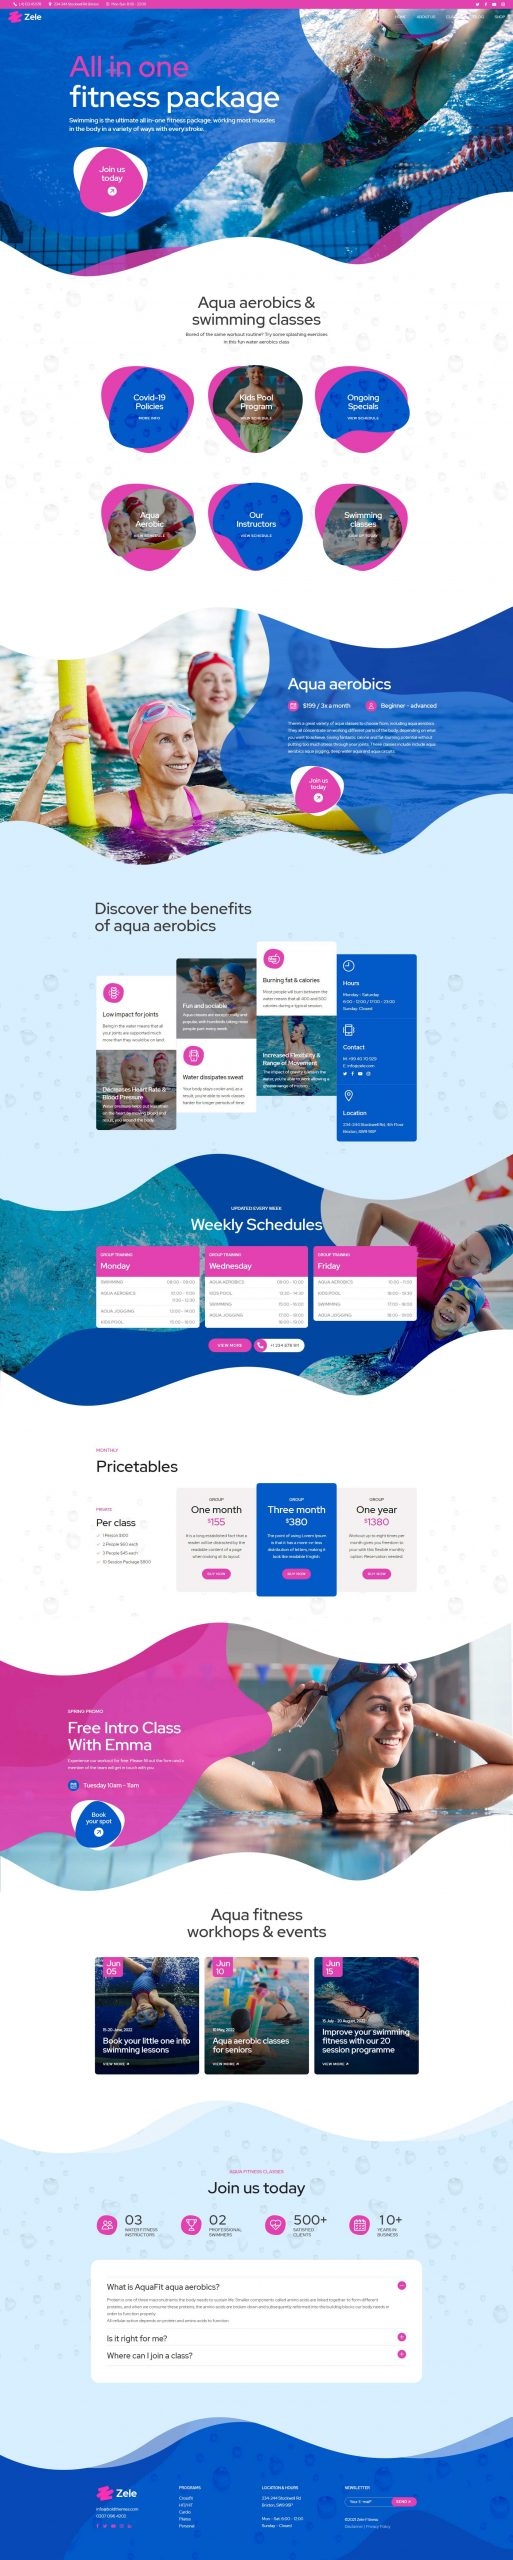 http://zele.bold-themes.com/wp-content/uploads/2021/07/Fluid-Home-03-scaled-1.jpg